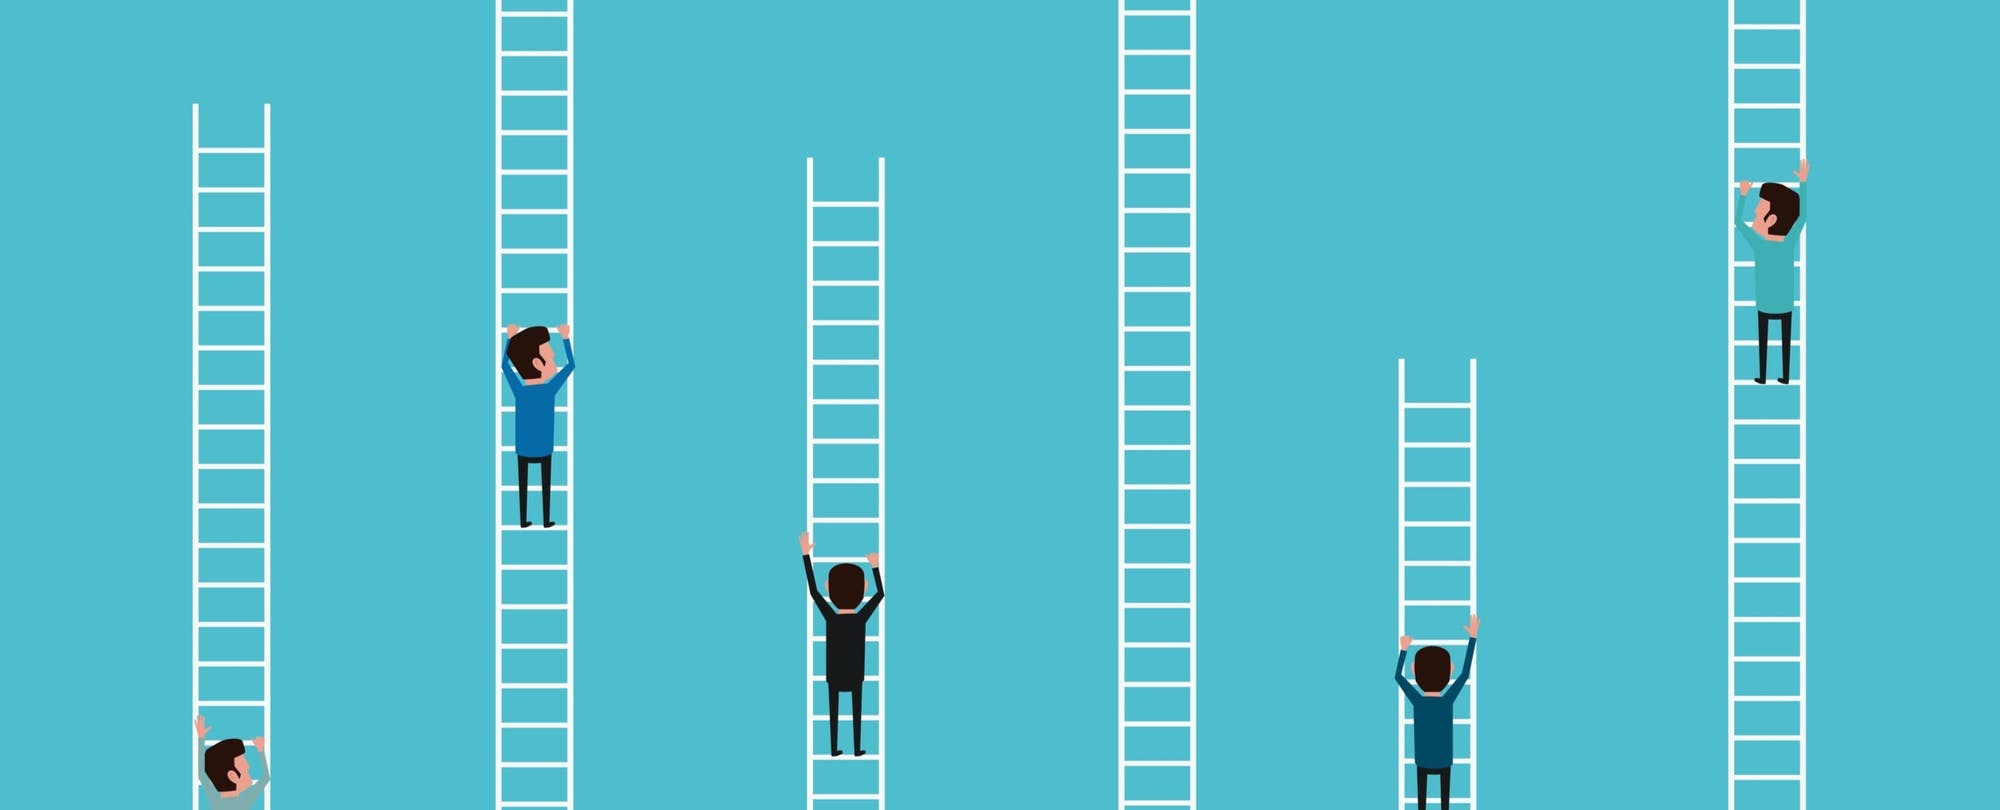 The Risks and Rewards of Getting Rid of Grade Levels | EdSurge News